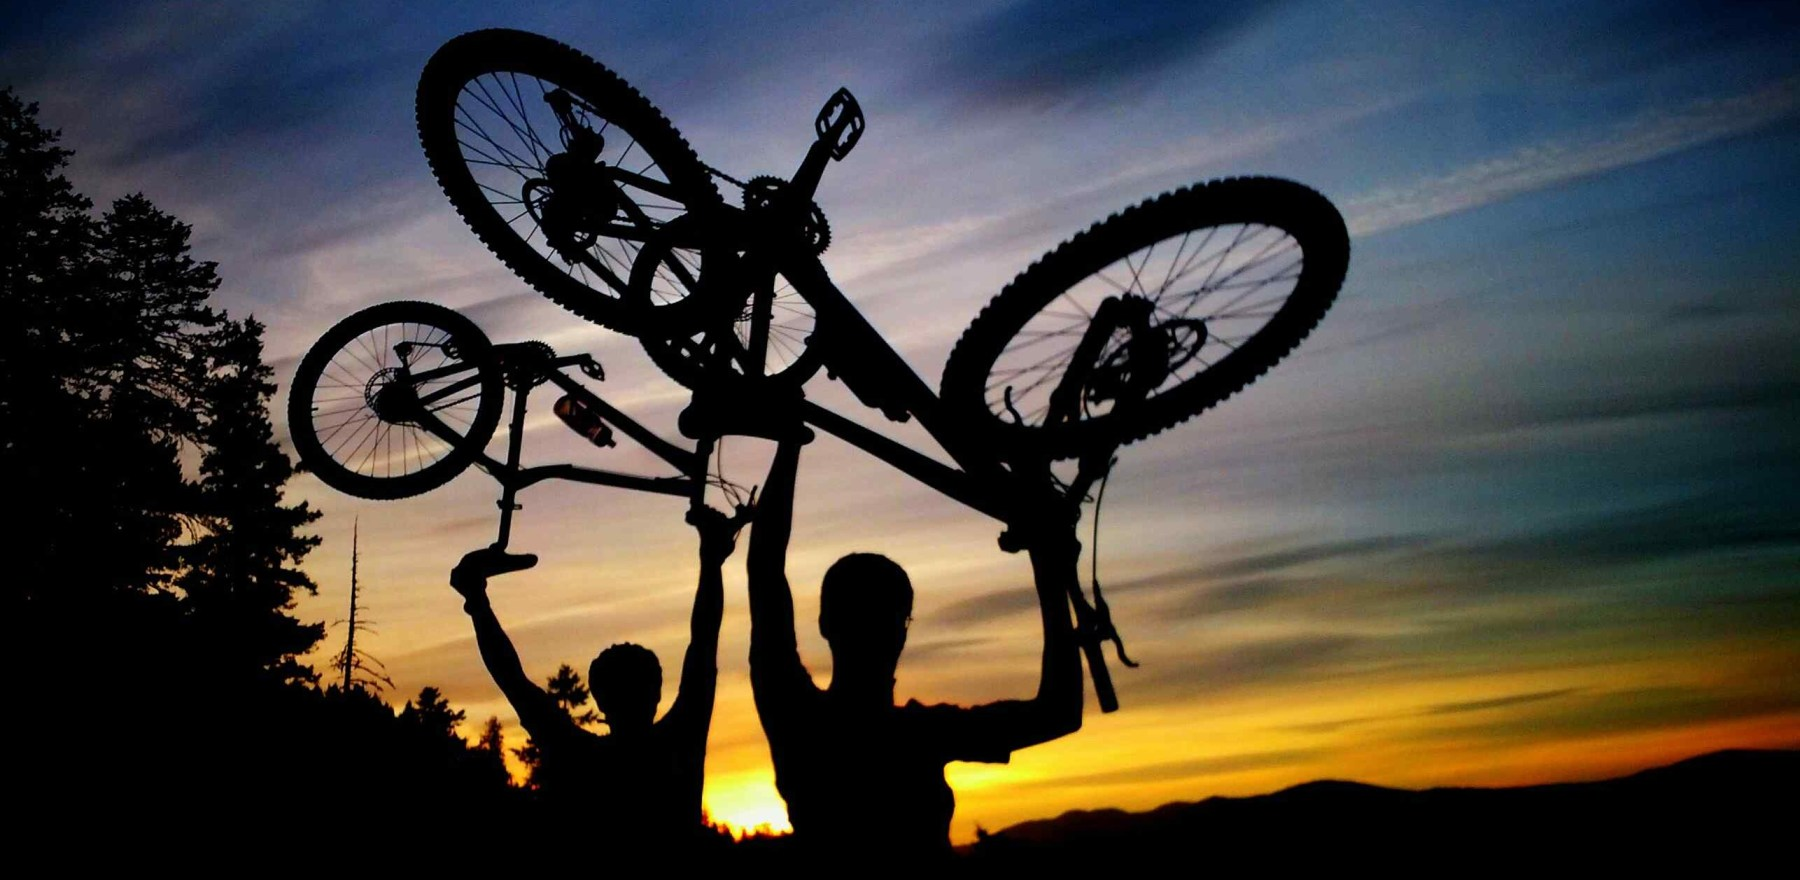 Mountain Bike, two guys, sunset